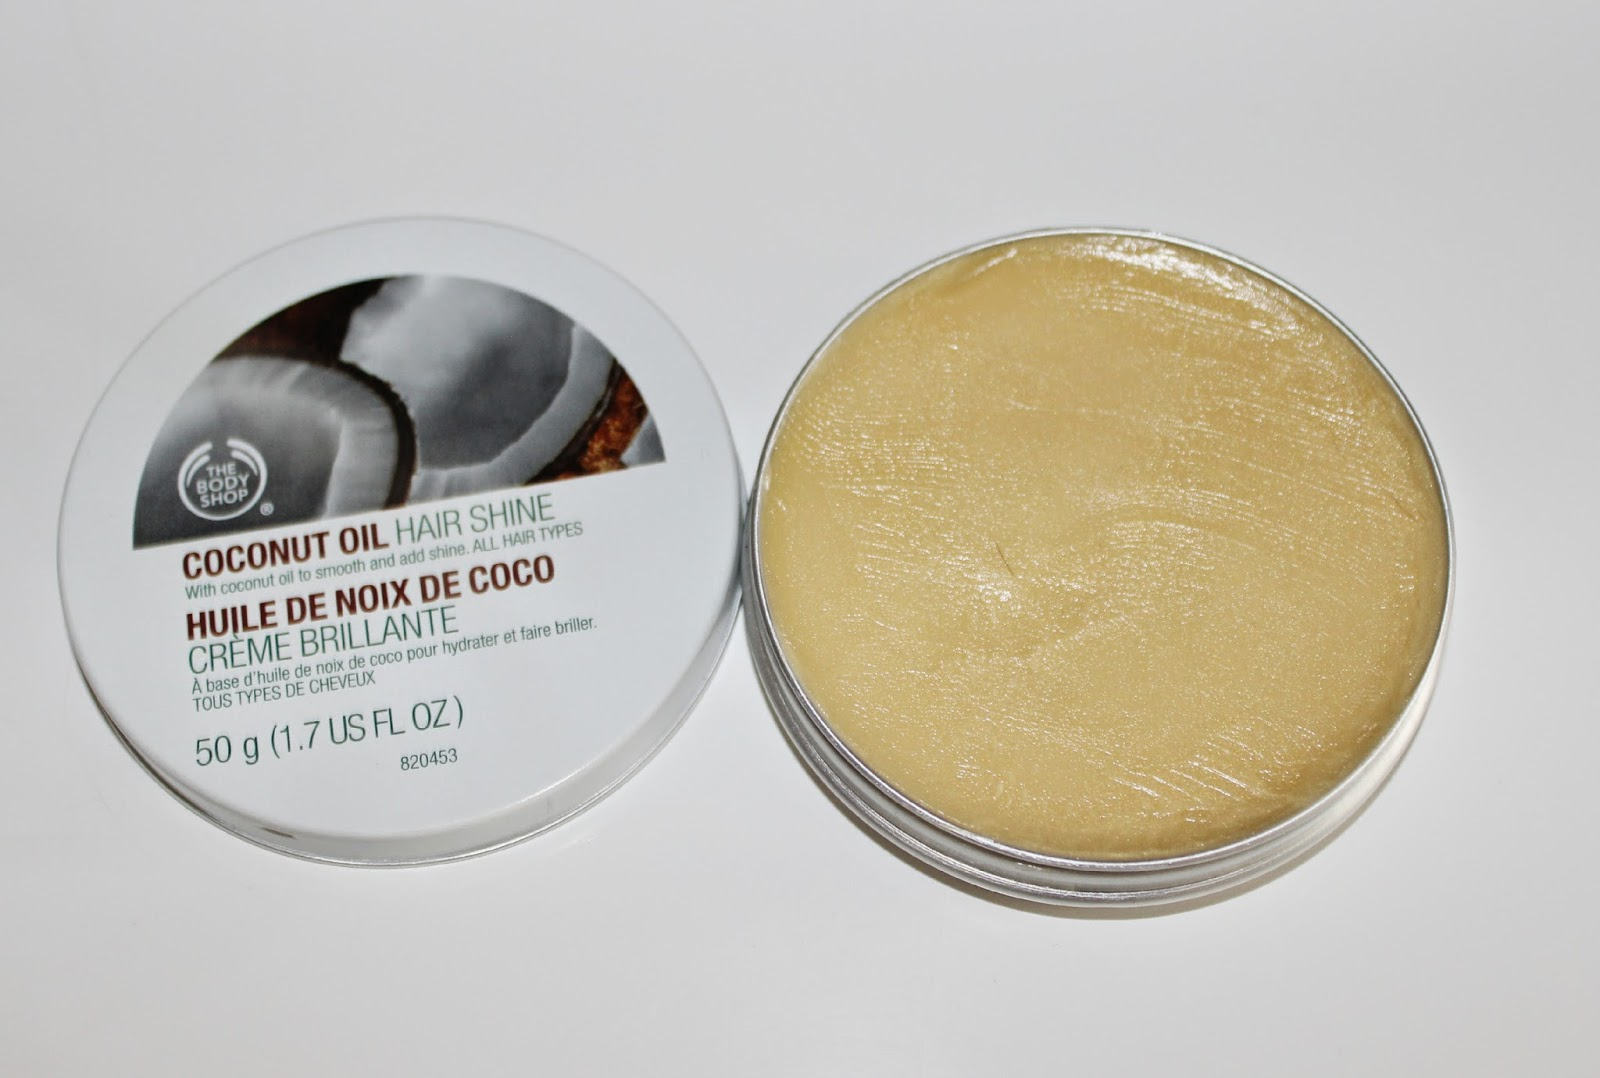 The Body Shop Coconut Oil Hair Shine Image